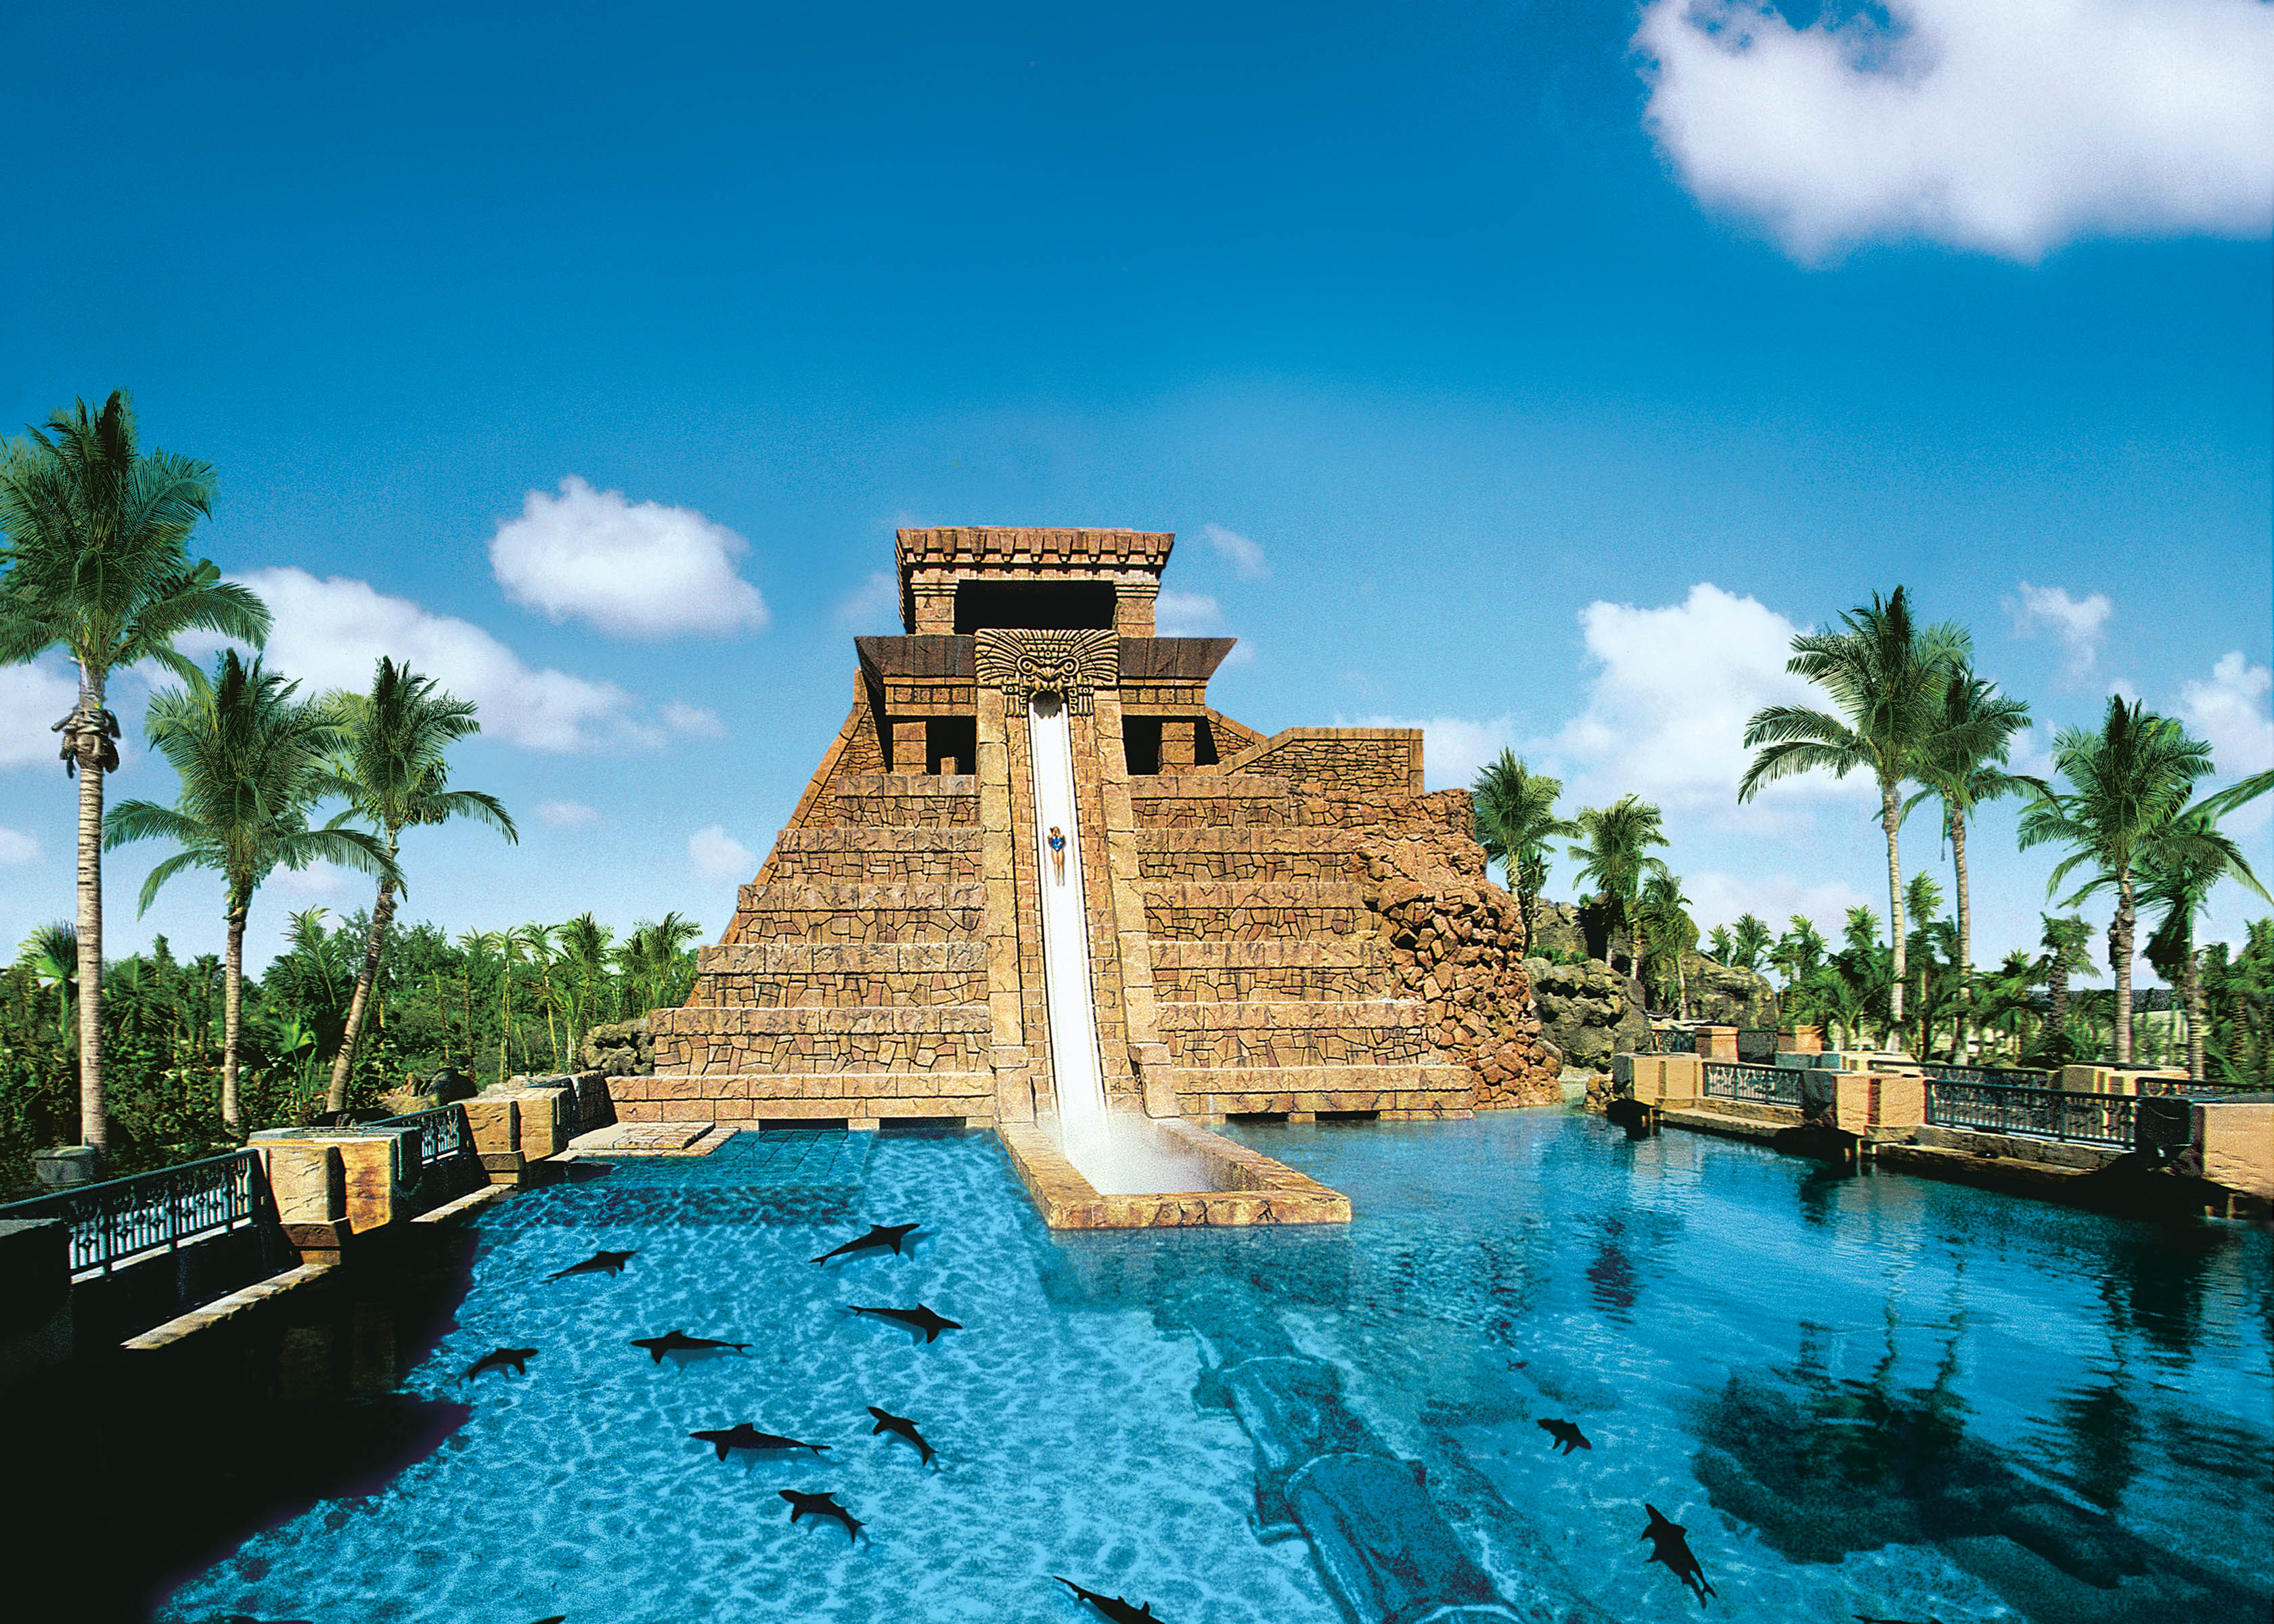 The Worlds Best Water Parks According To TripAdvisor - 10 best water parks in the world